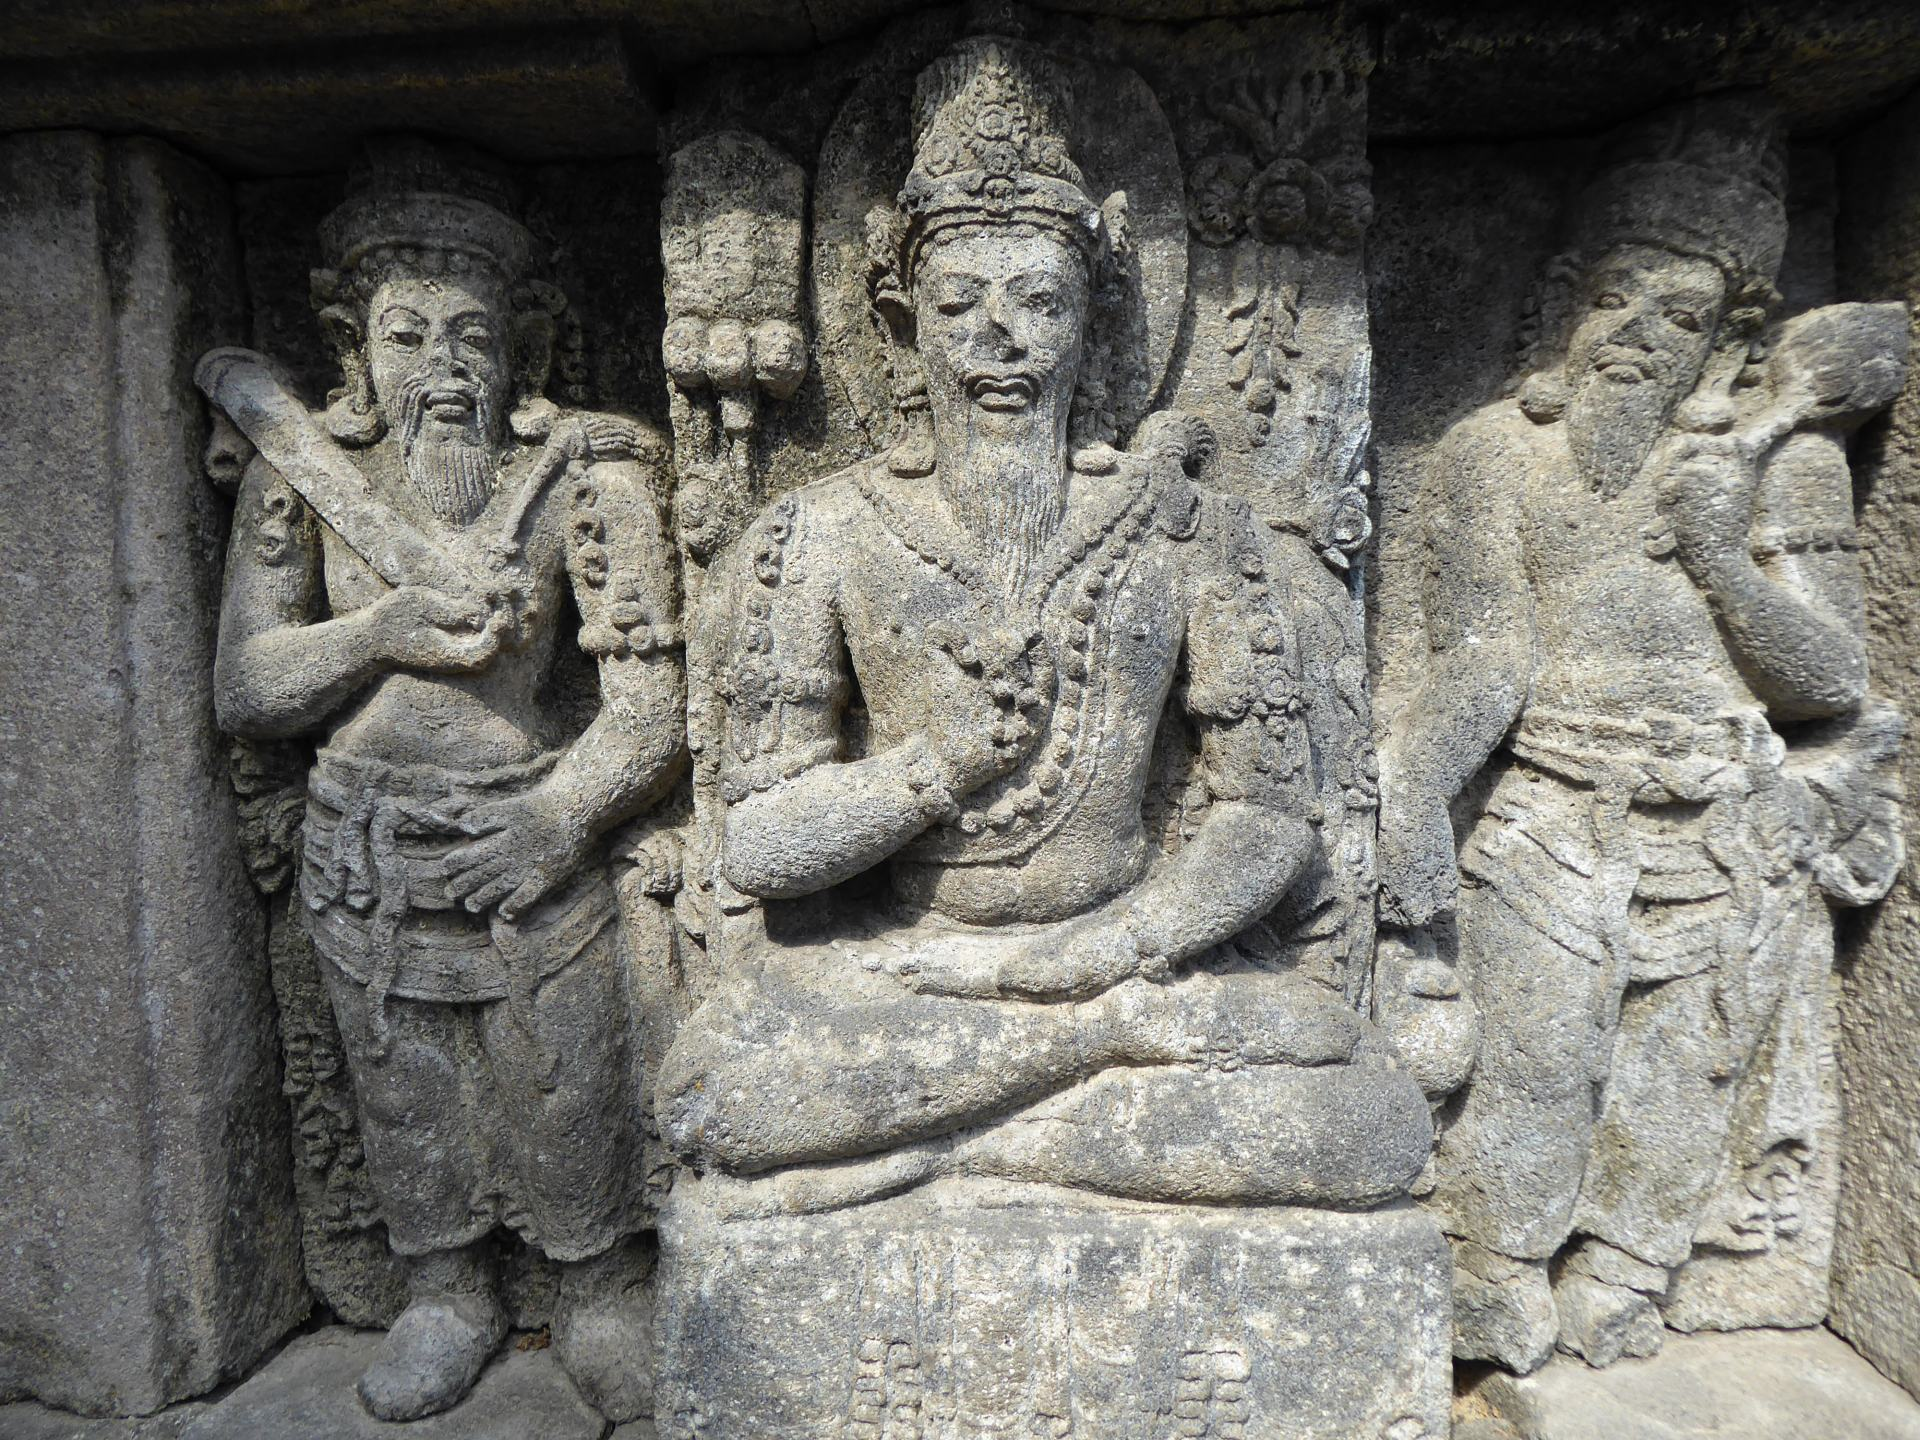 Stone carving of 3 Hindu figures at Prambanan, one of the Southeast Asian temples on this list.